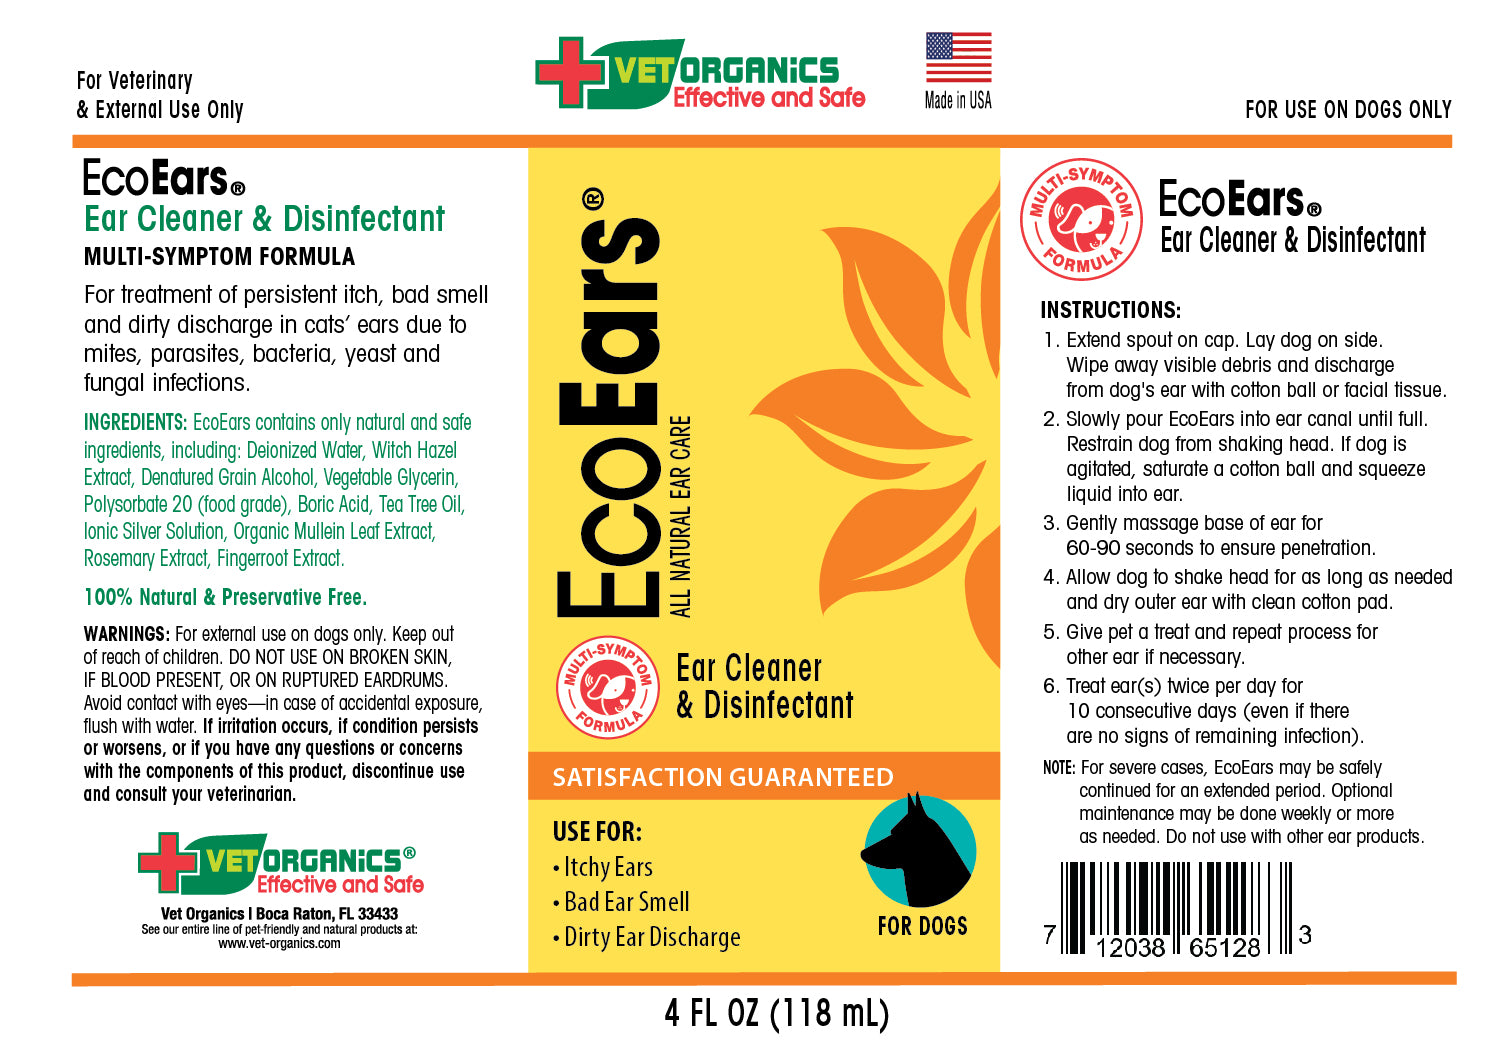 ecoears-dogs-4oz-product-label